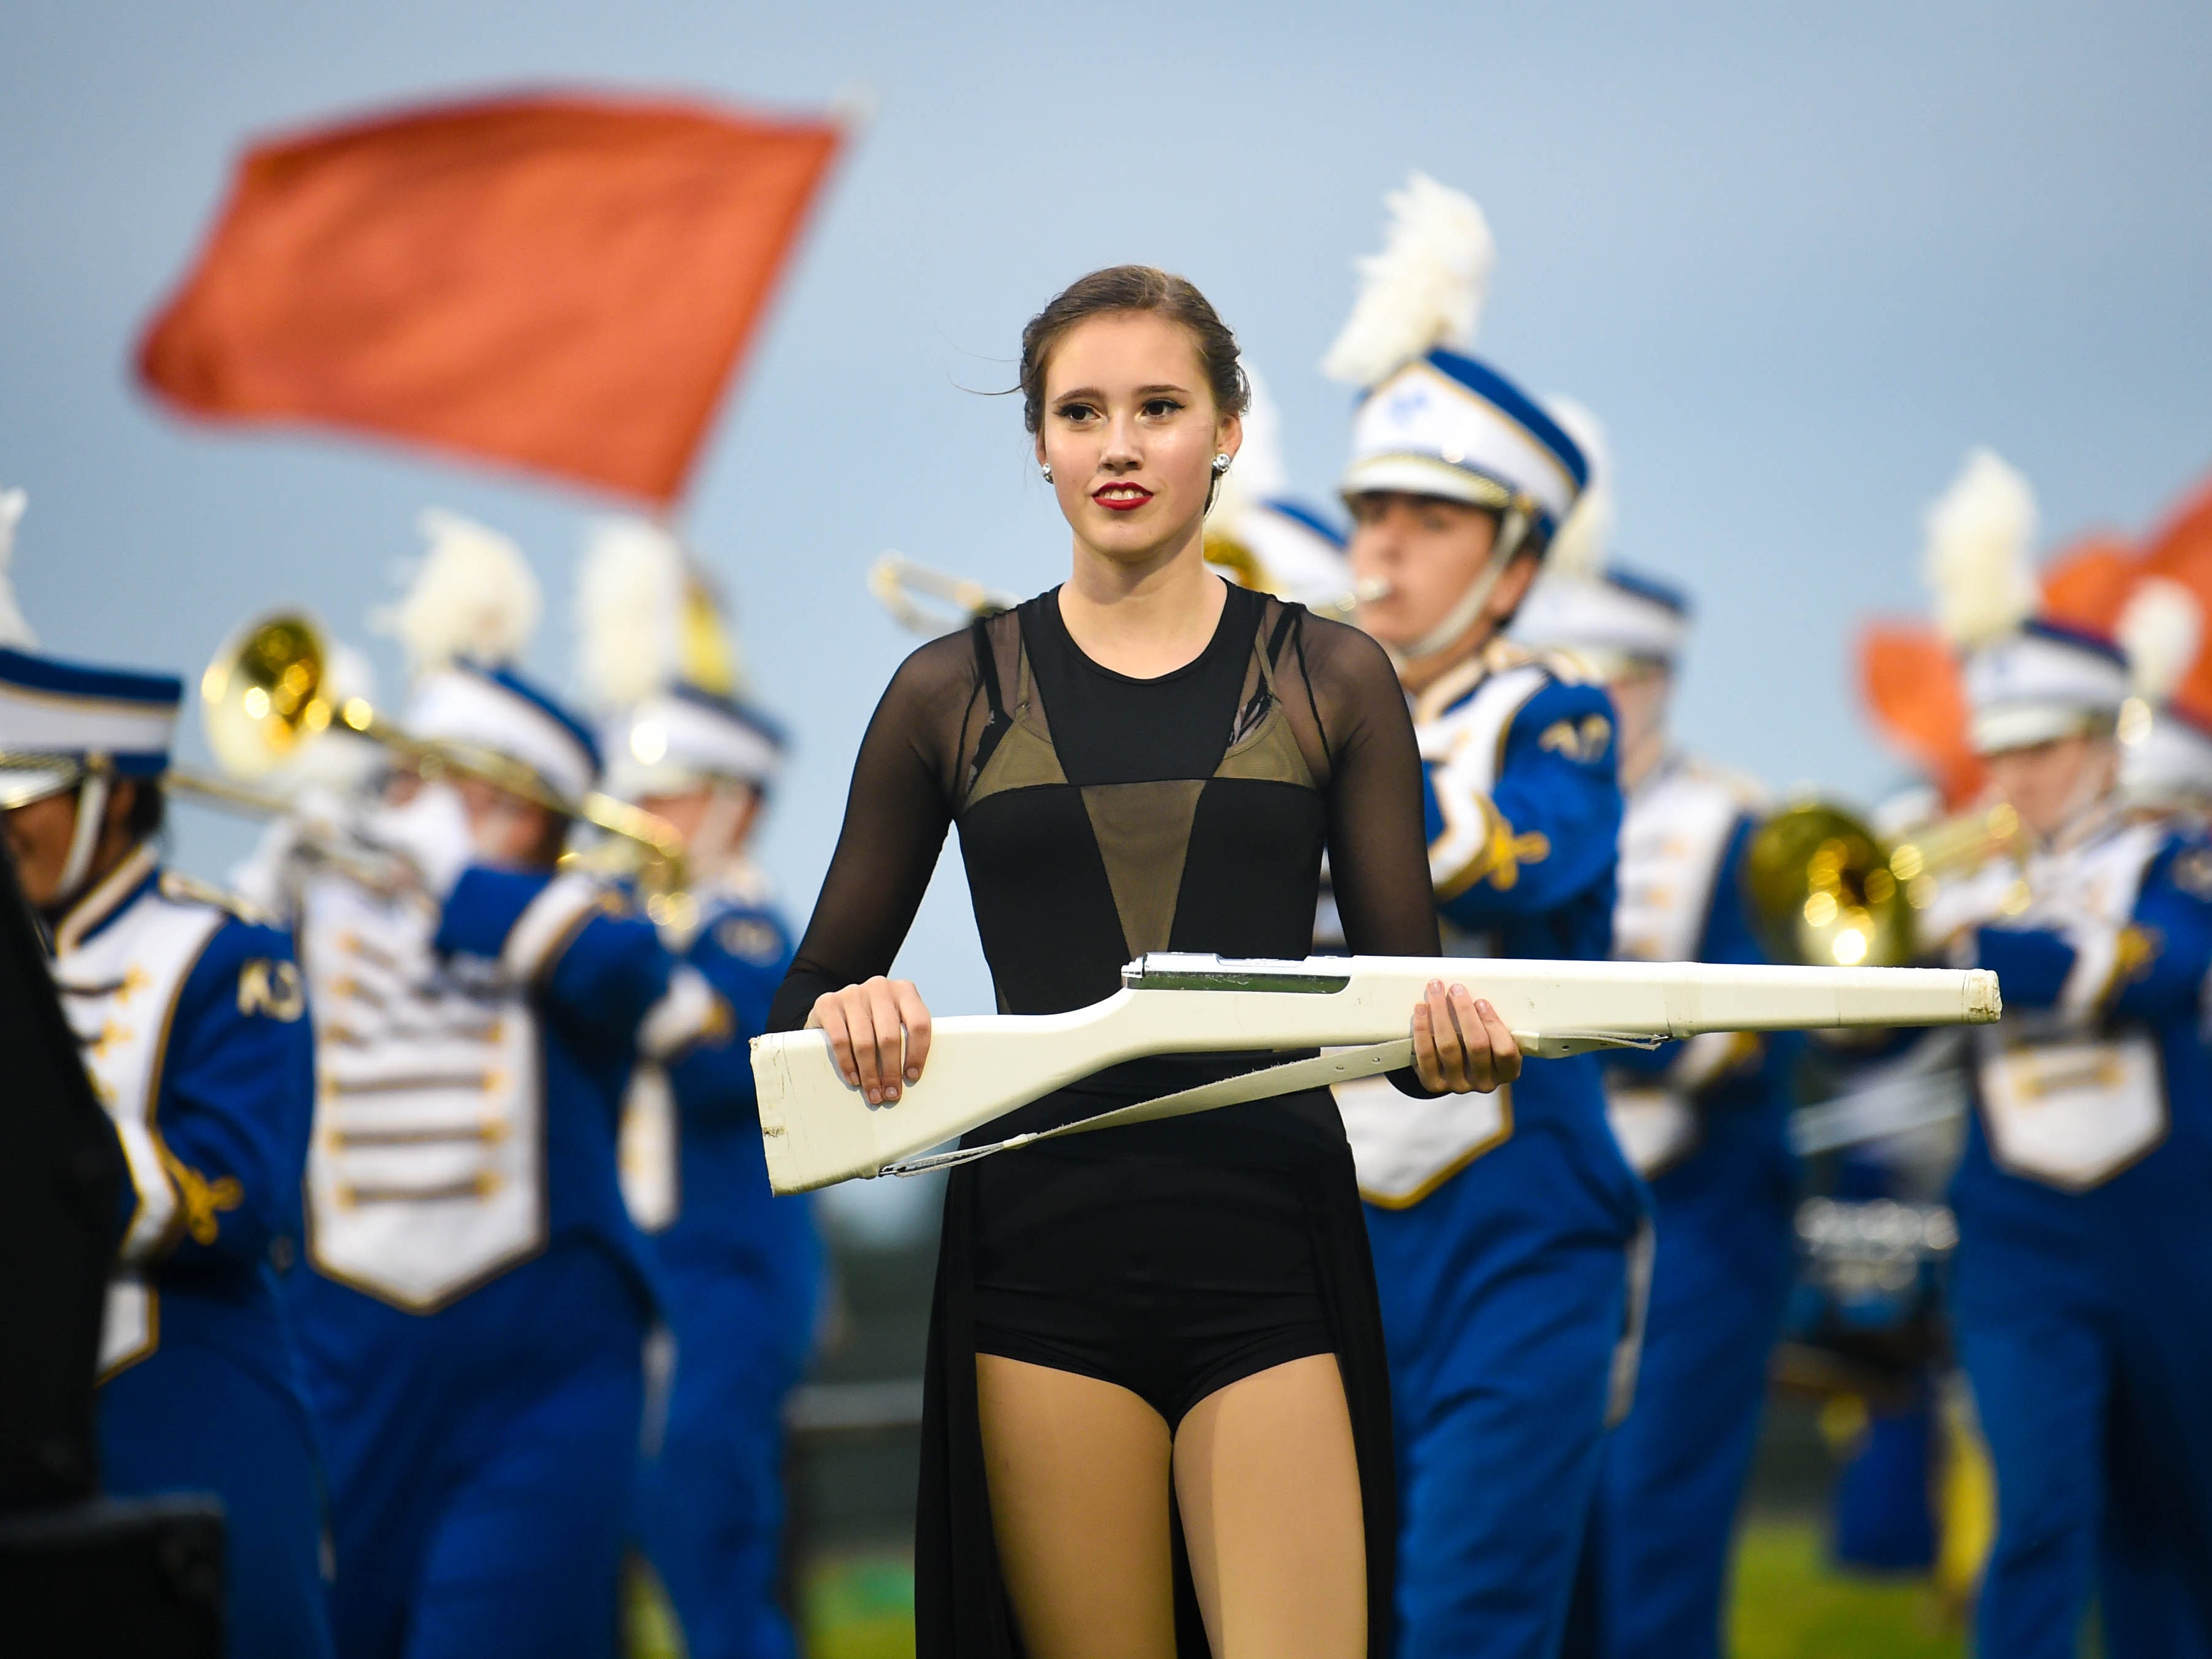 The Kennard-Dale band took the field before the Division II football game against York Suburban started, Friday, September 21, 2018. The York Suburban Trojans beat the Kennard-Dale Rams 31-25.